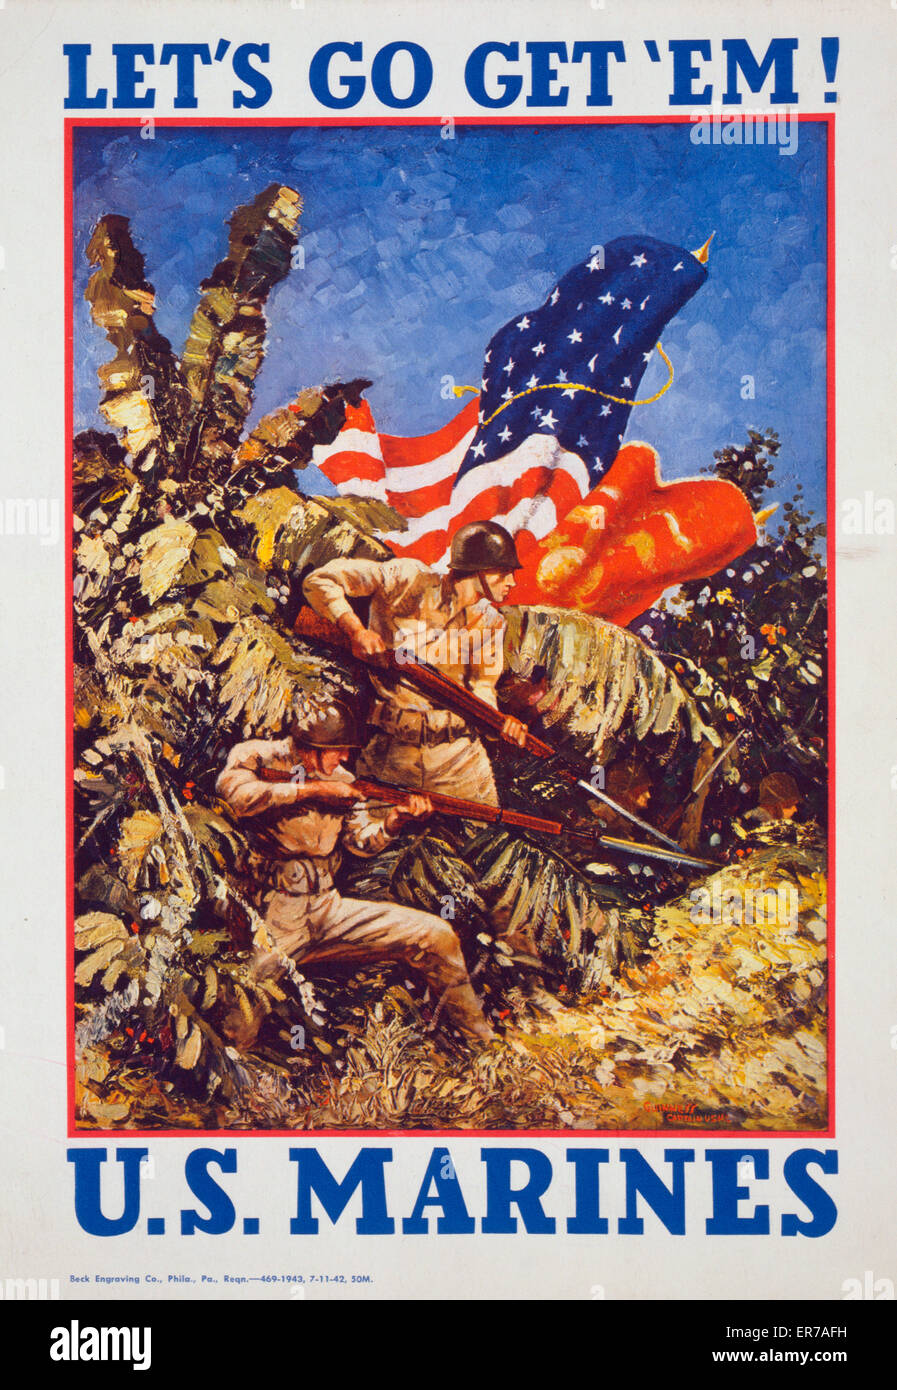 Let's go get 'em! US Marines. Poster showing Marines bearing rifles with bayonets and flags in a jungle. - Stock Image